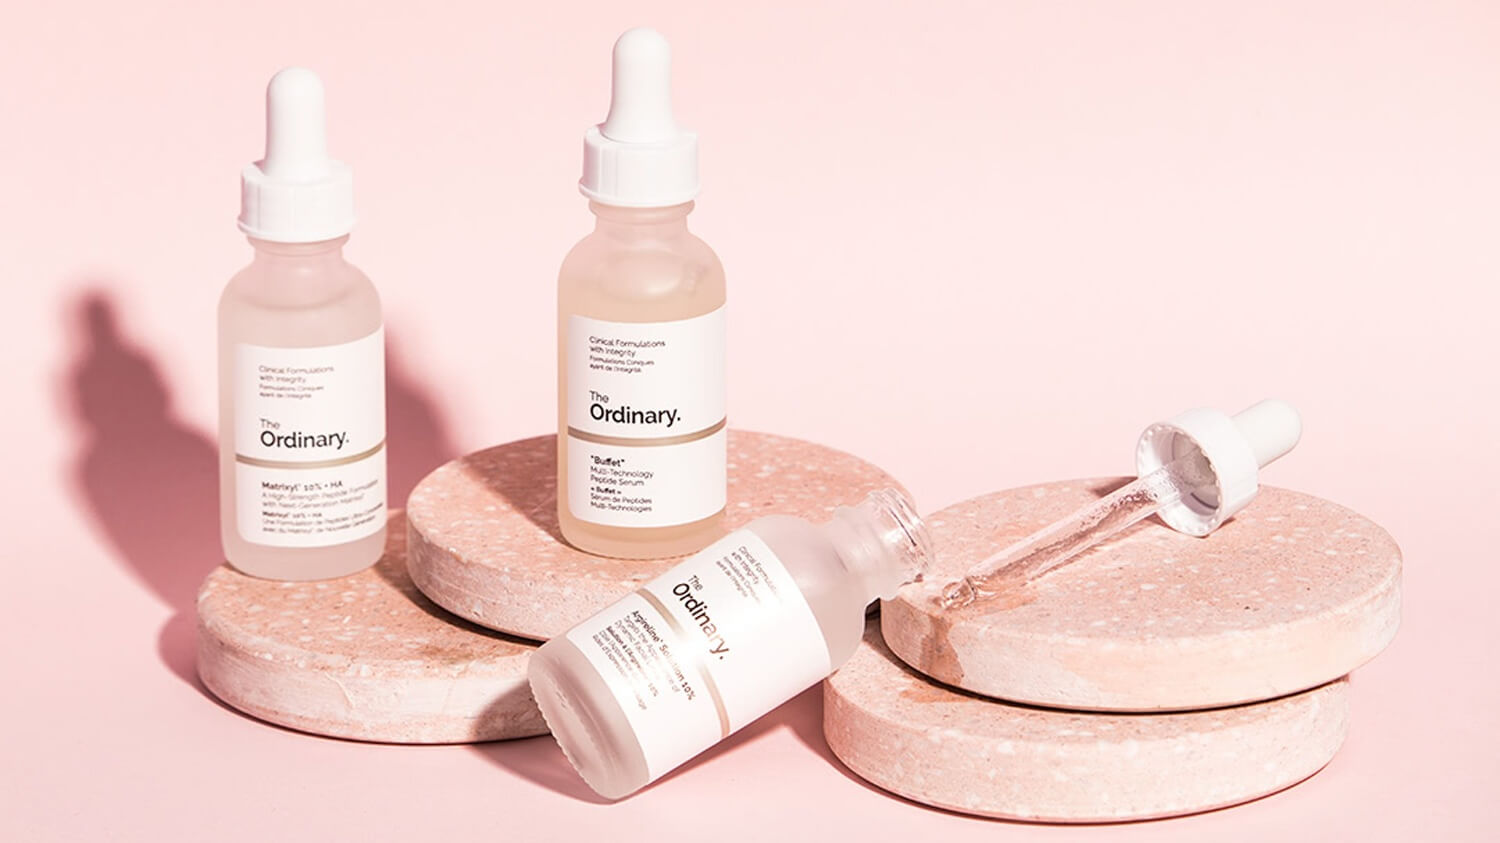 Everything You Need to Know About The Ordinary's Vegan and Cruelty-Free Skincare